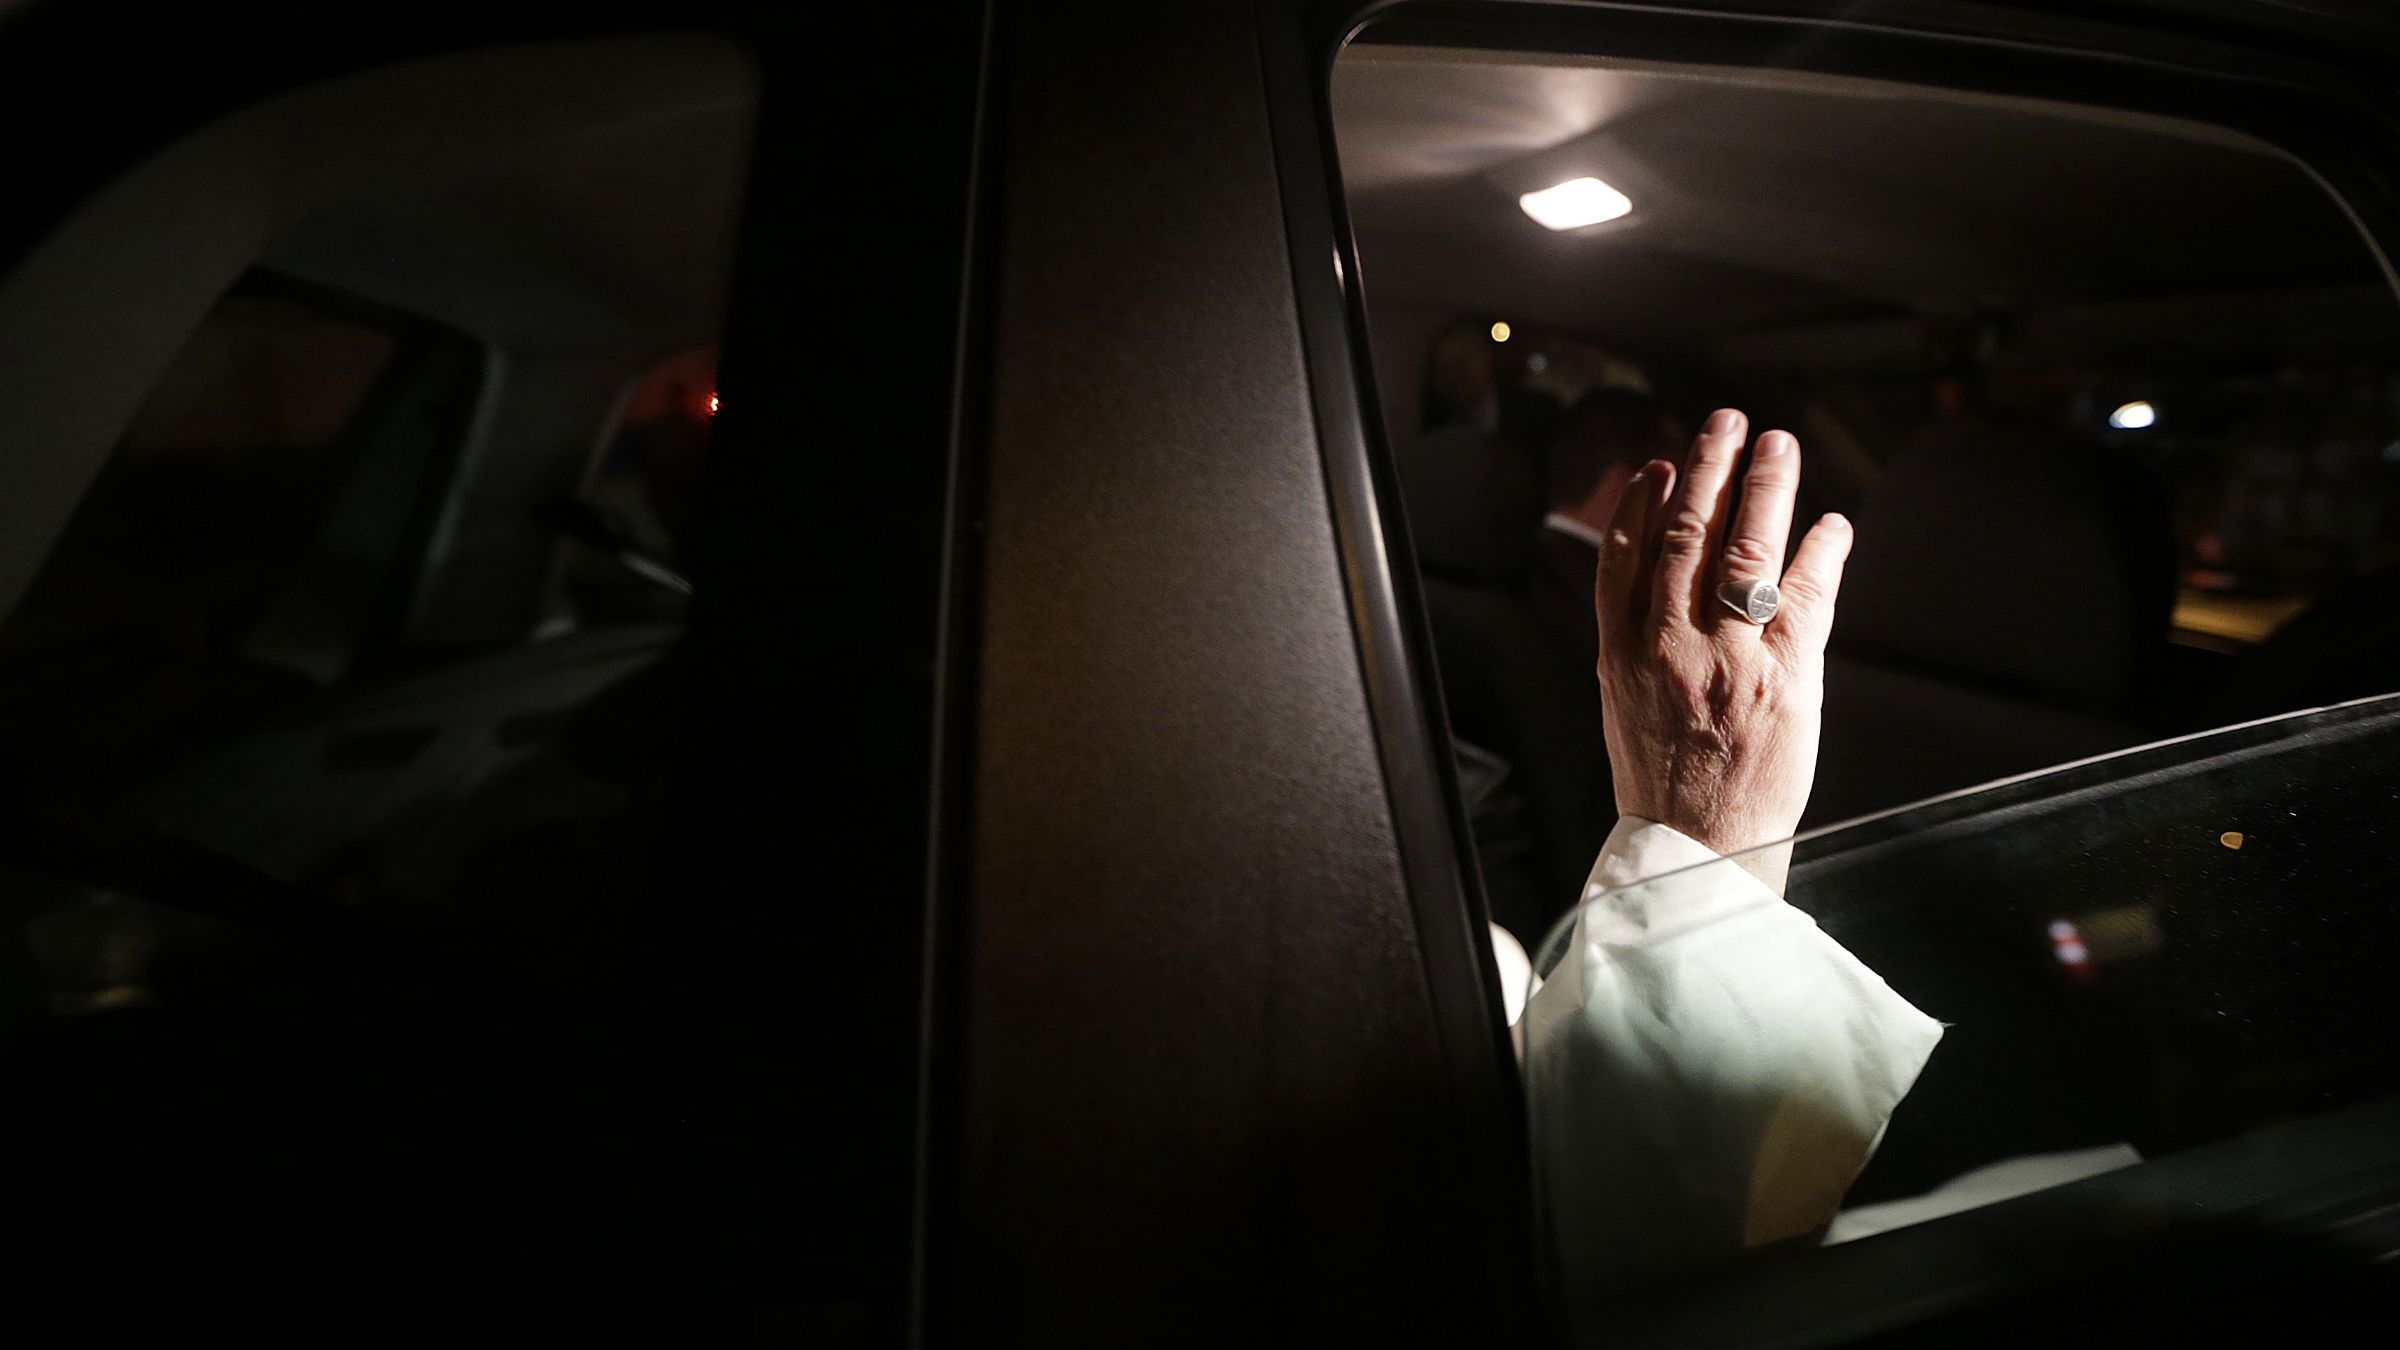 Pope Francis waves as he leaves Guanabara Palace where he attended a welcoming ceremony in Rio de Janeiro, July 22, 2013. Pope Francis touched down in Rio de Janeiro on Monday, starting his first foreign trip as pontiff and a weeklong series of events expected to attract more than a million people to a gathering of young faithful in Brazil, home to the world's largest Roman Catholic population.